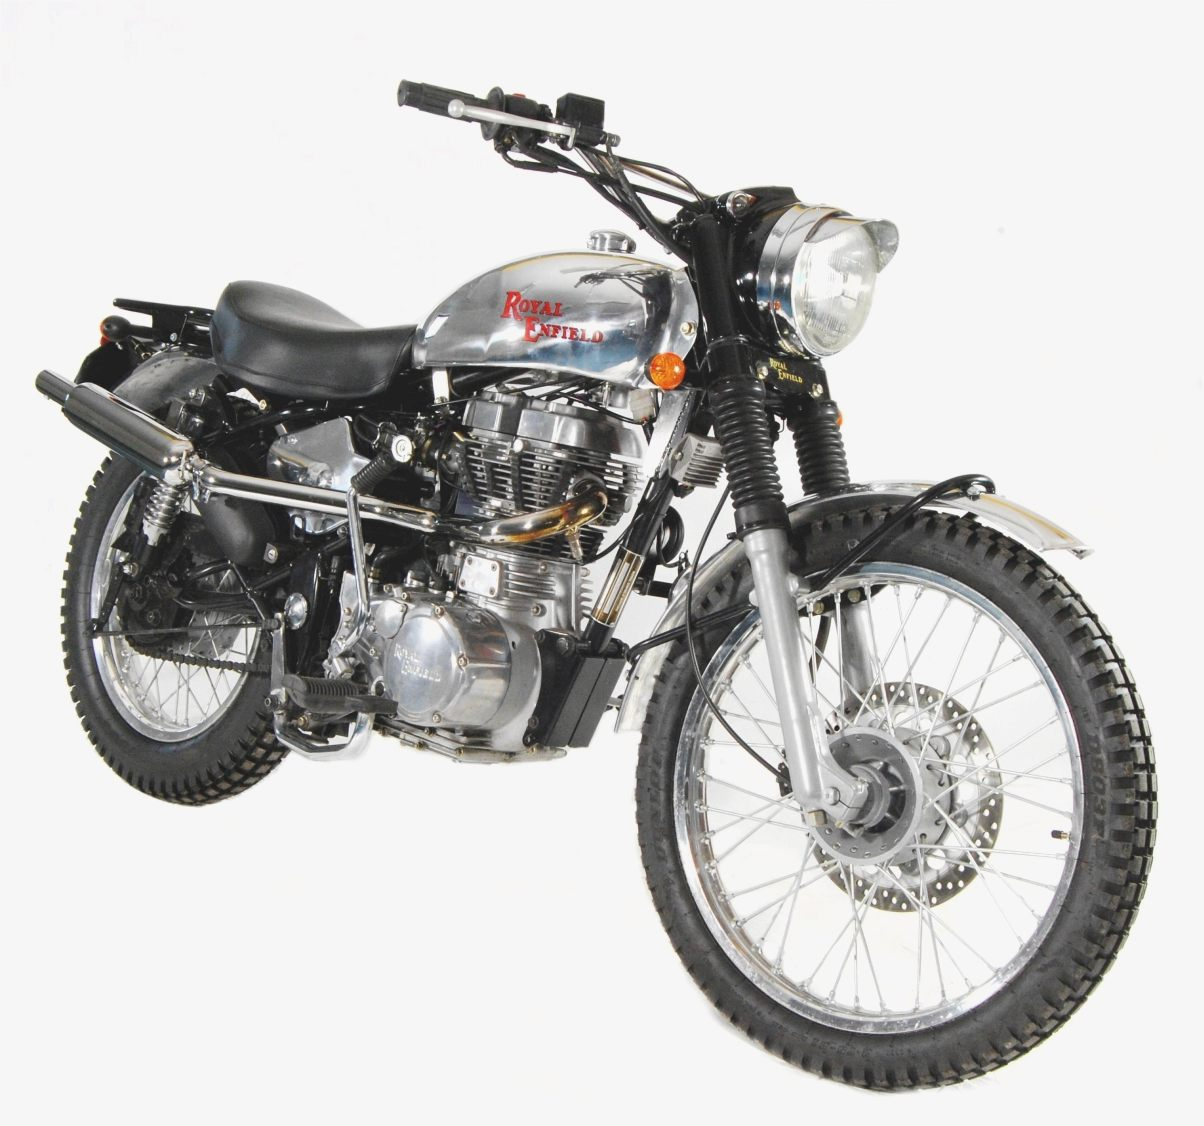 Royal Enfield Bullet 500 Trial Trail 2009 images #127402